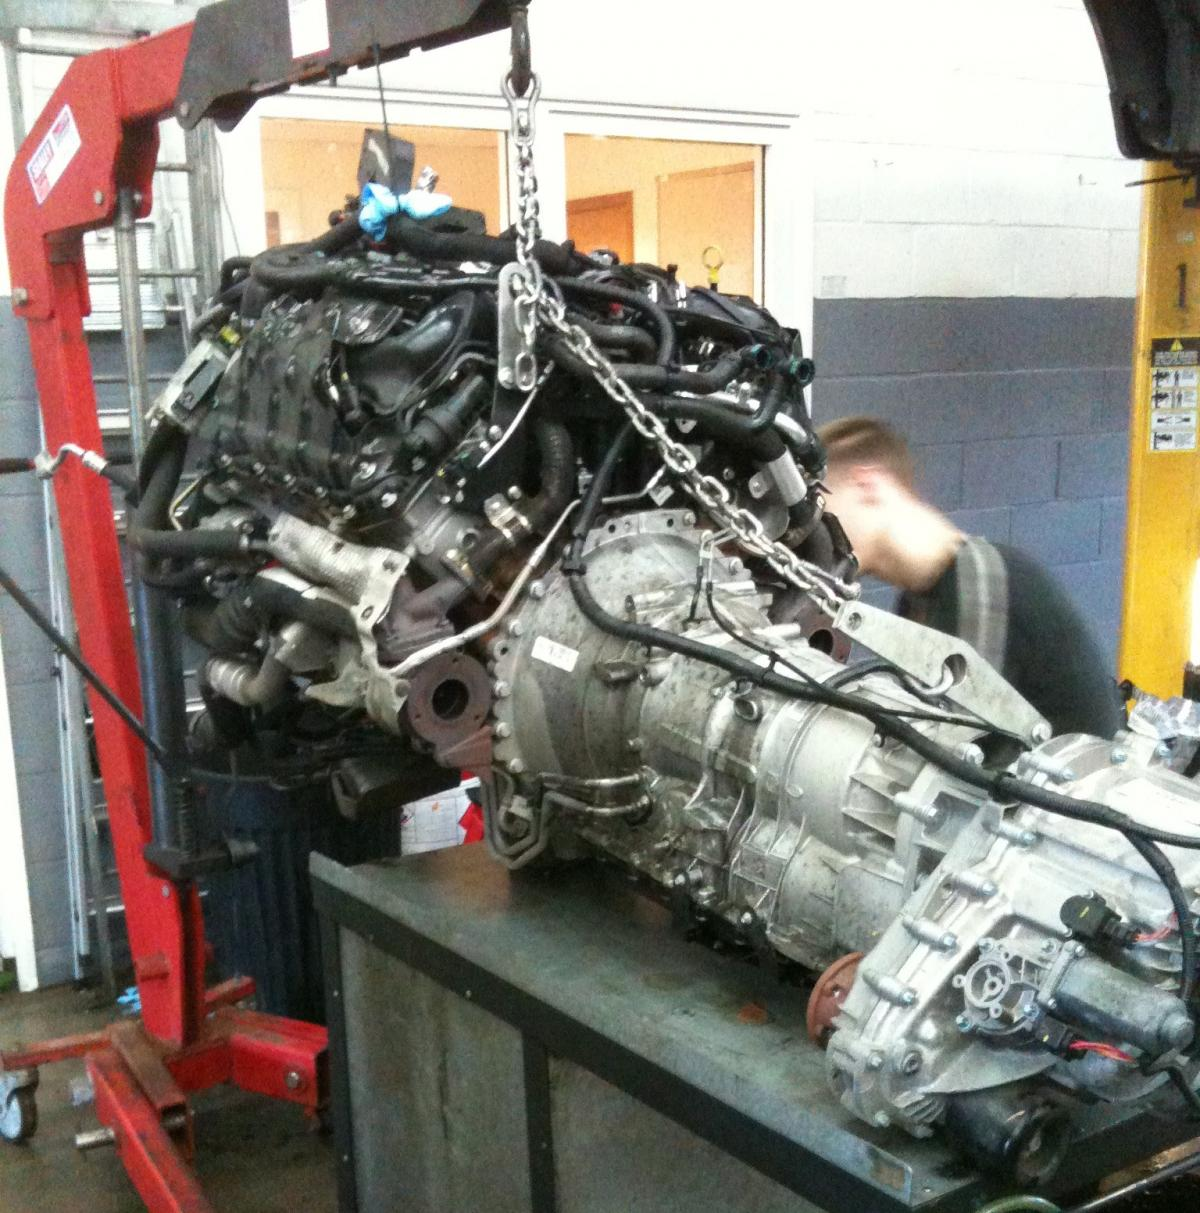 range rover sport engine swap pics international forum lr4x4